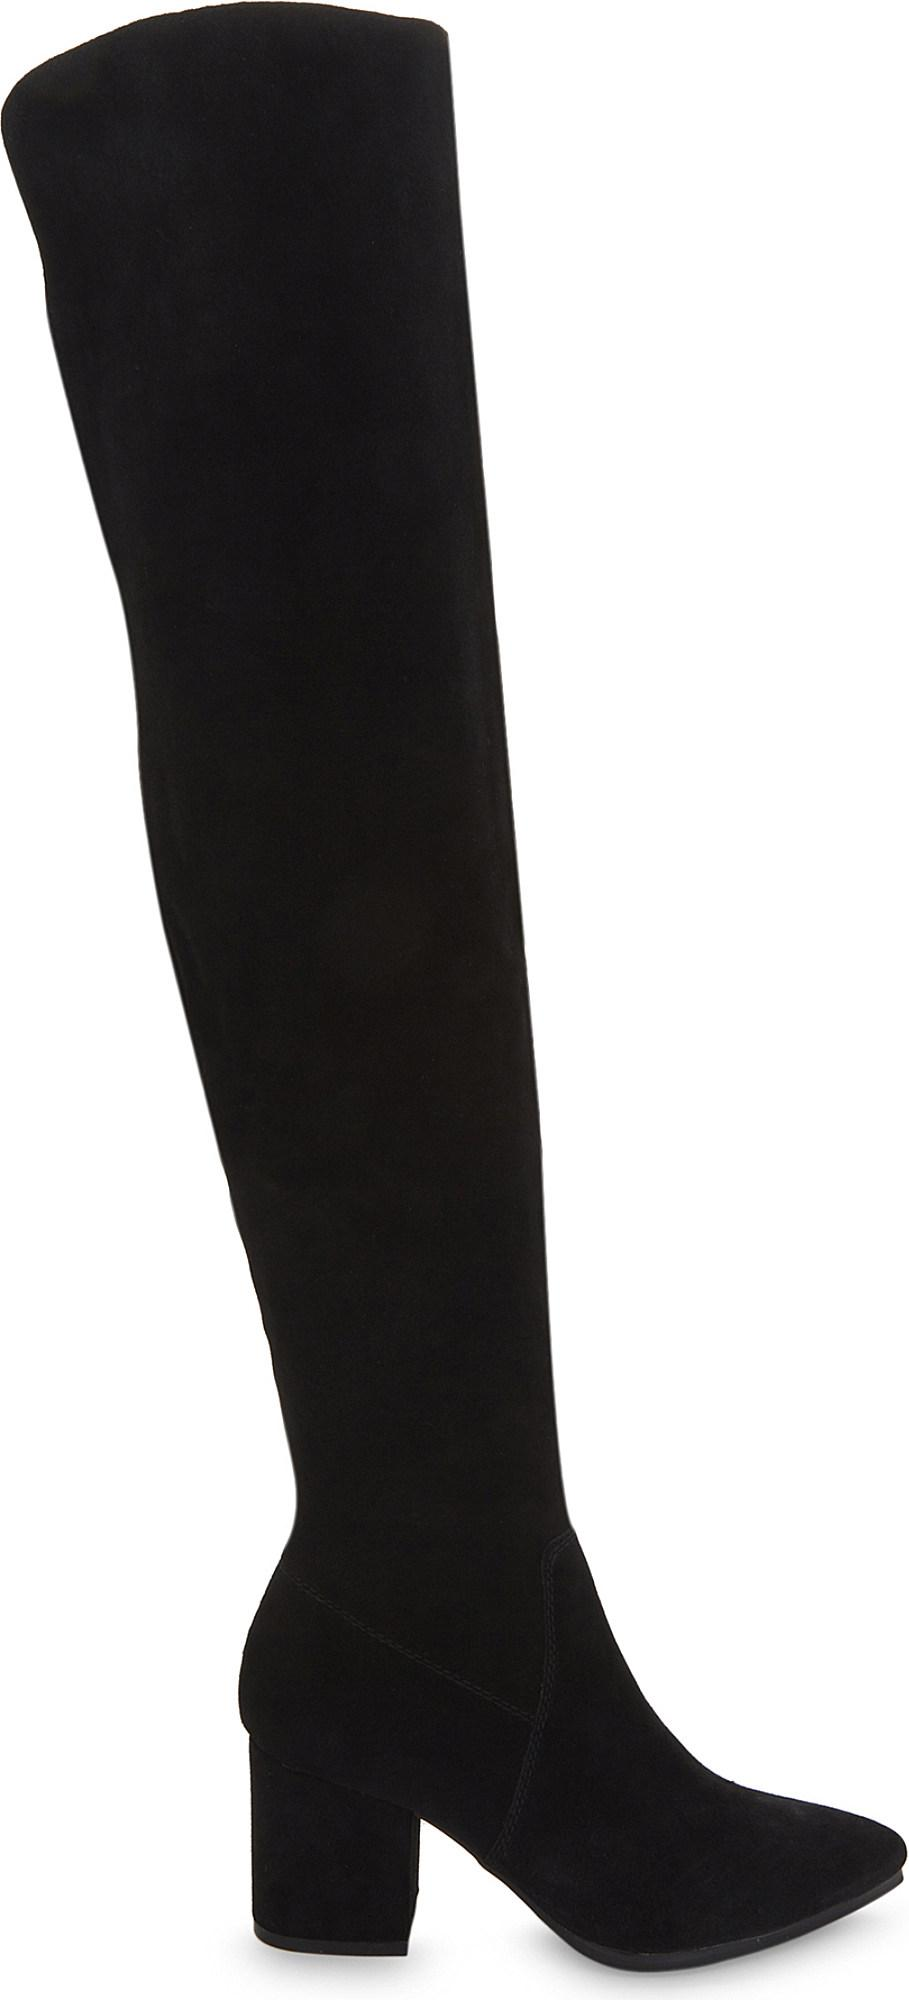 09c368ac442 Lyst - ALDO Iboewet Suede Over-the-knee Boots in Black